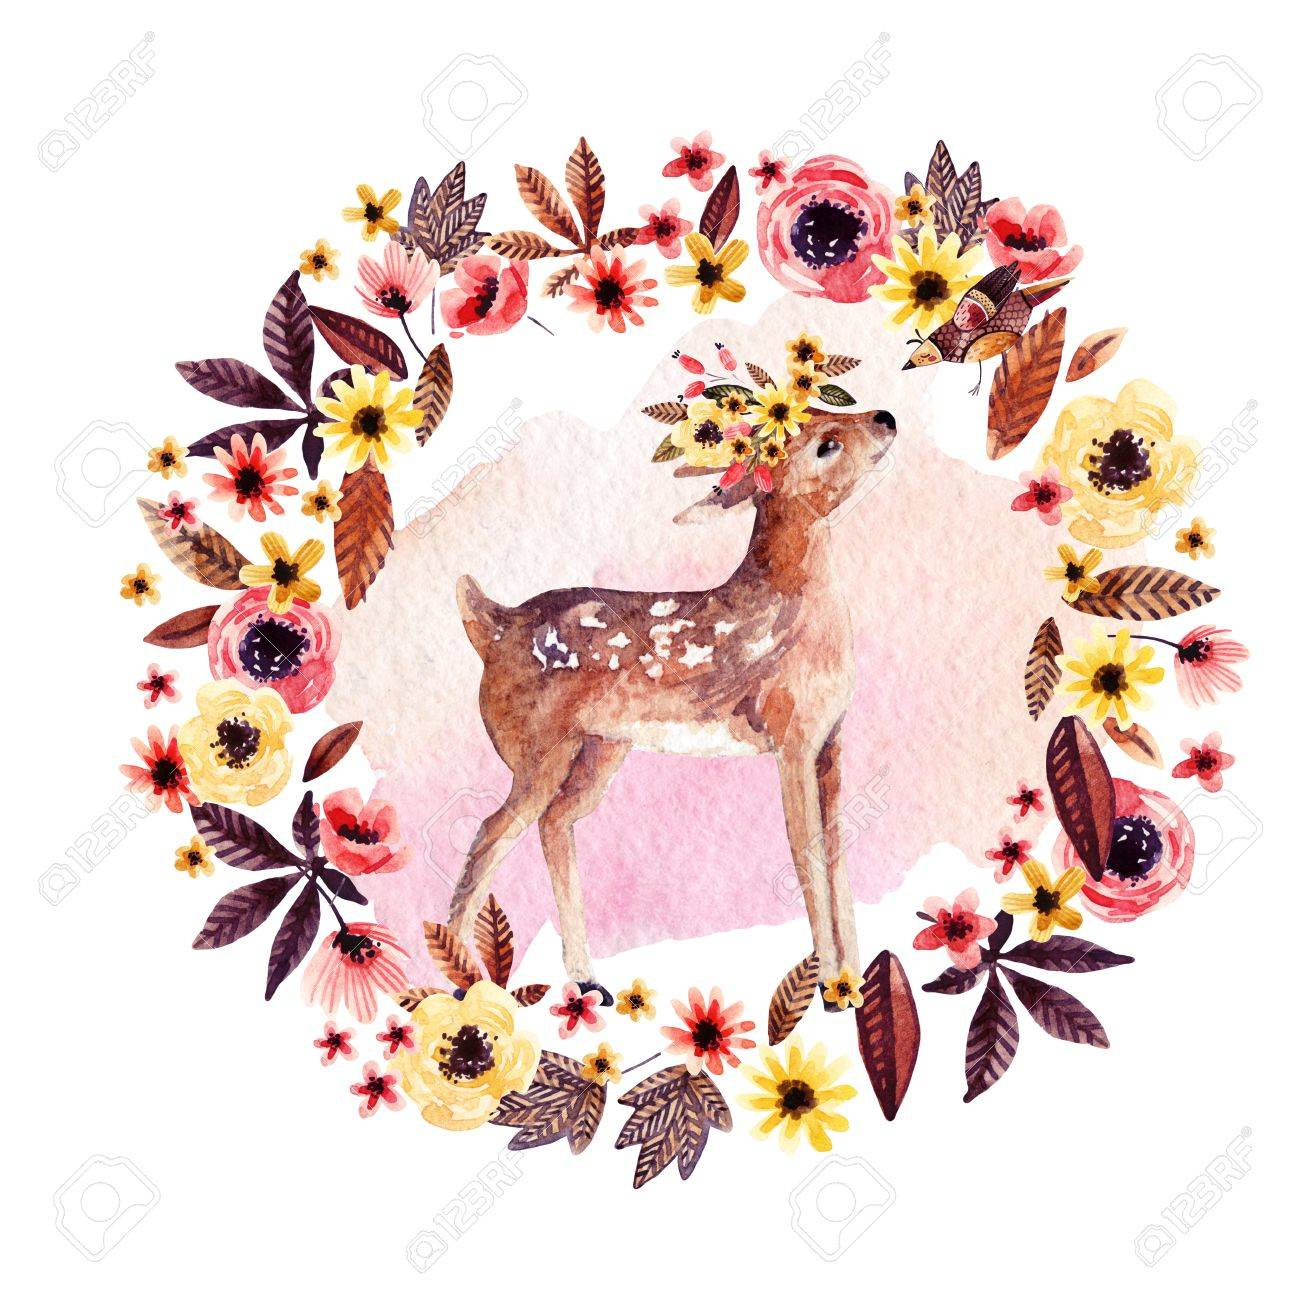 Watercolor Deer Fawn Among Flowers Isolated On White Background 1300x1300